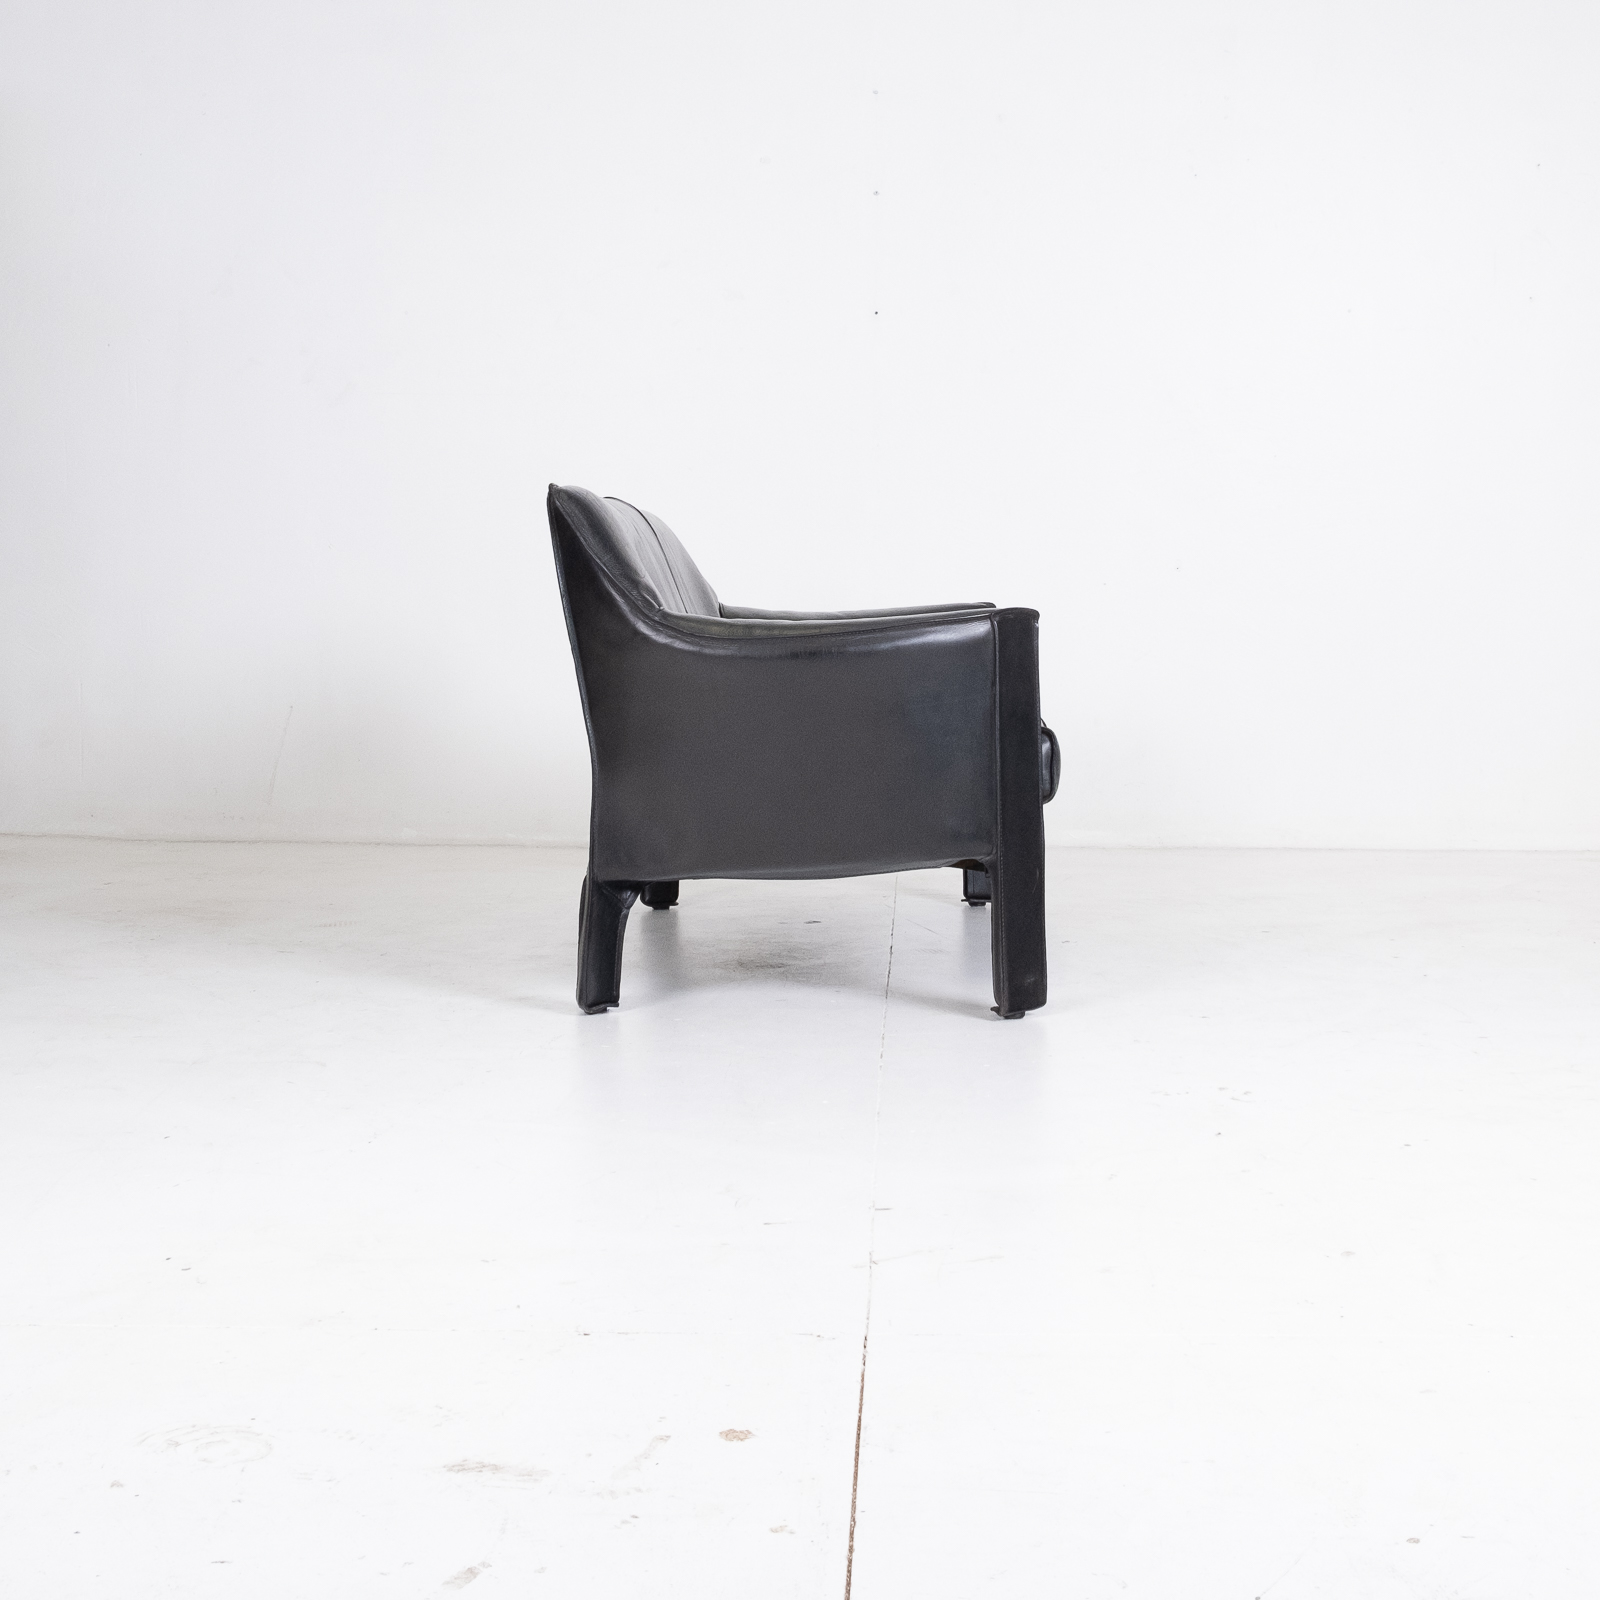 Model 415 Cab 2 Seat Sofa By Mario Bellini For Cassina In Black Leather, 1987, Italy 00002